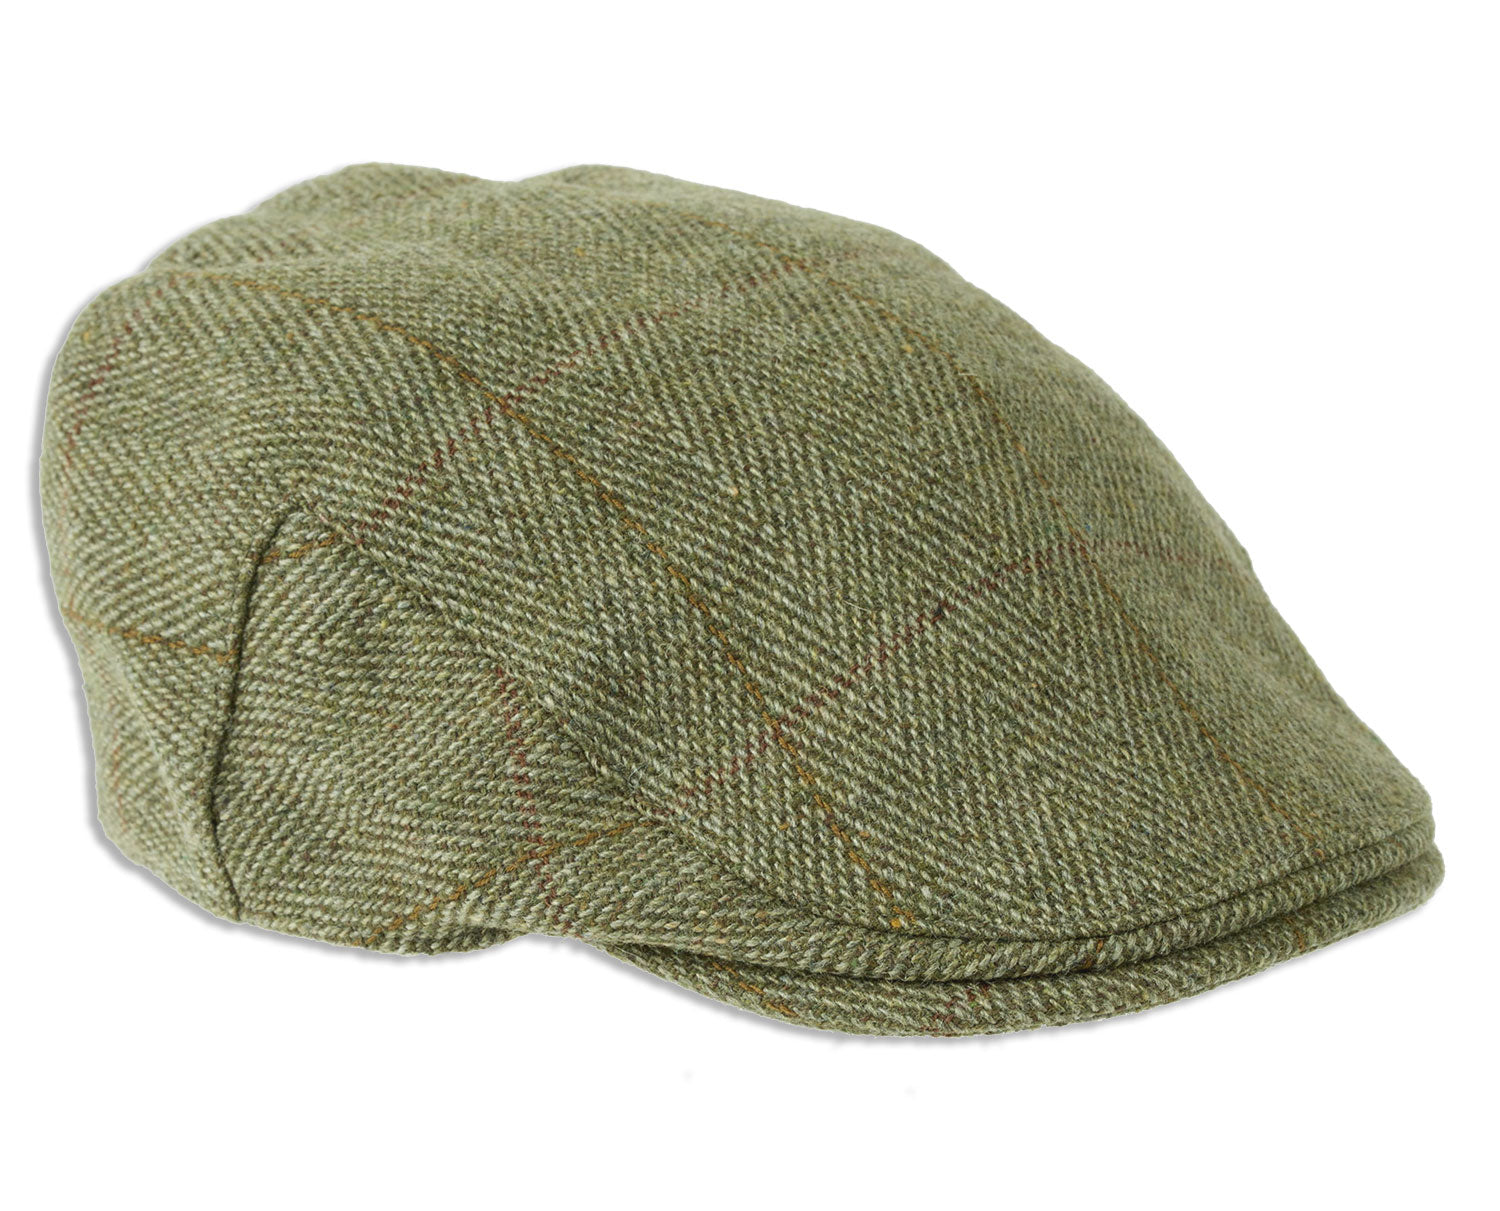 74c5cd9bb96 Heather Fox Derby Tweed Flat Cap